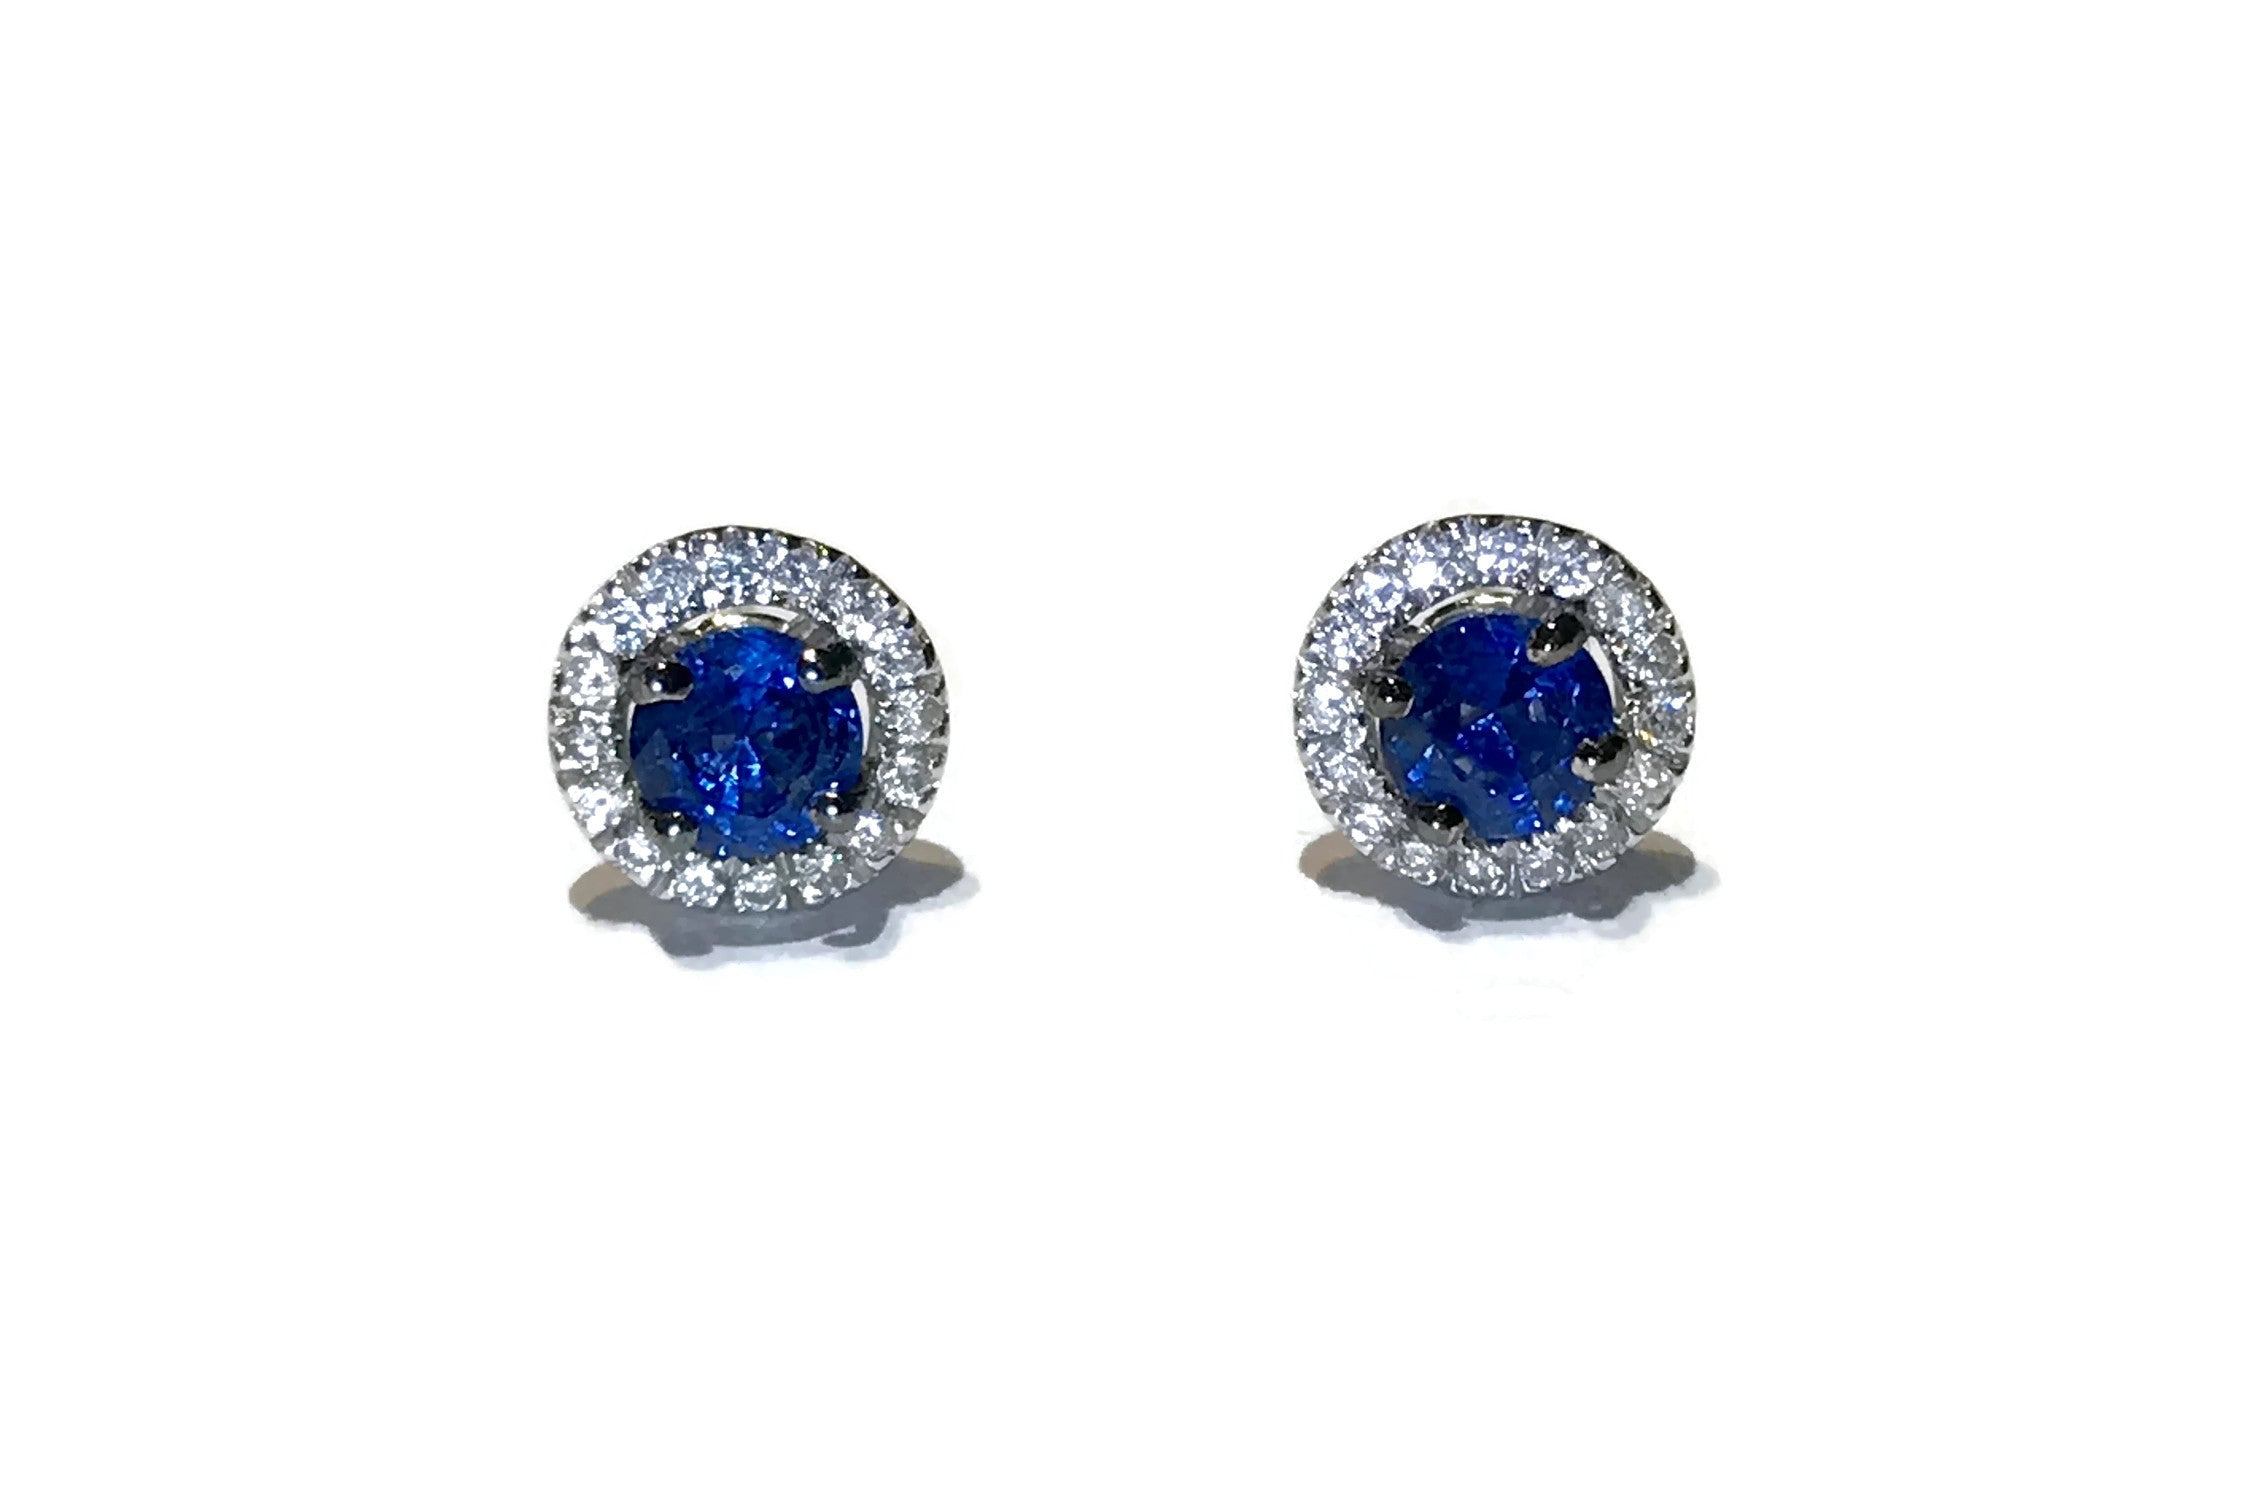 A-FURST-BOTTONI-STUD-EARRINGS-BLUE-SAPPHIRES-DIAMONDS-WHITE-GOLD-O1581B41